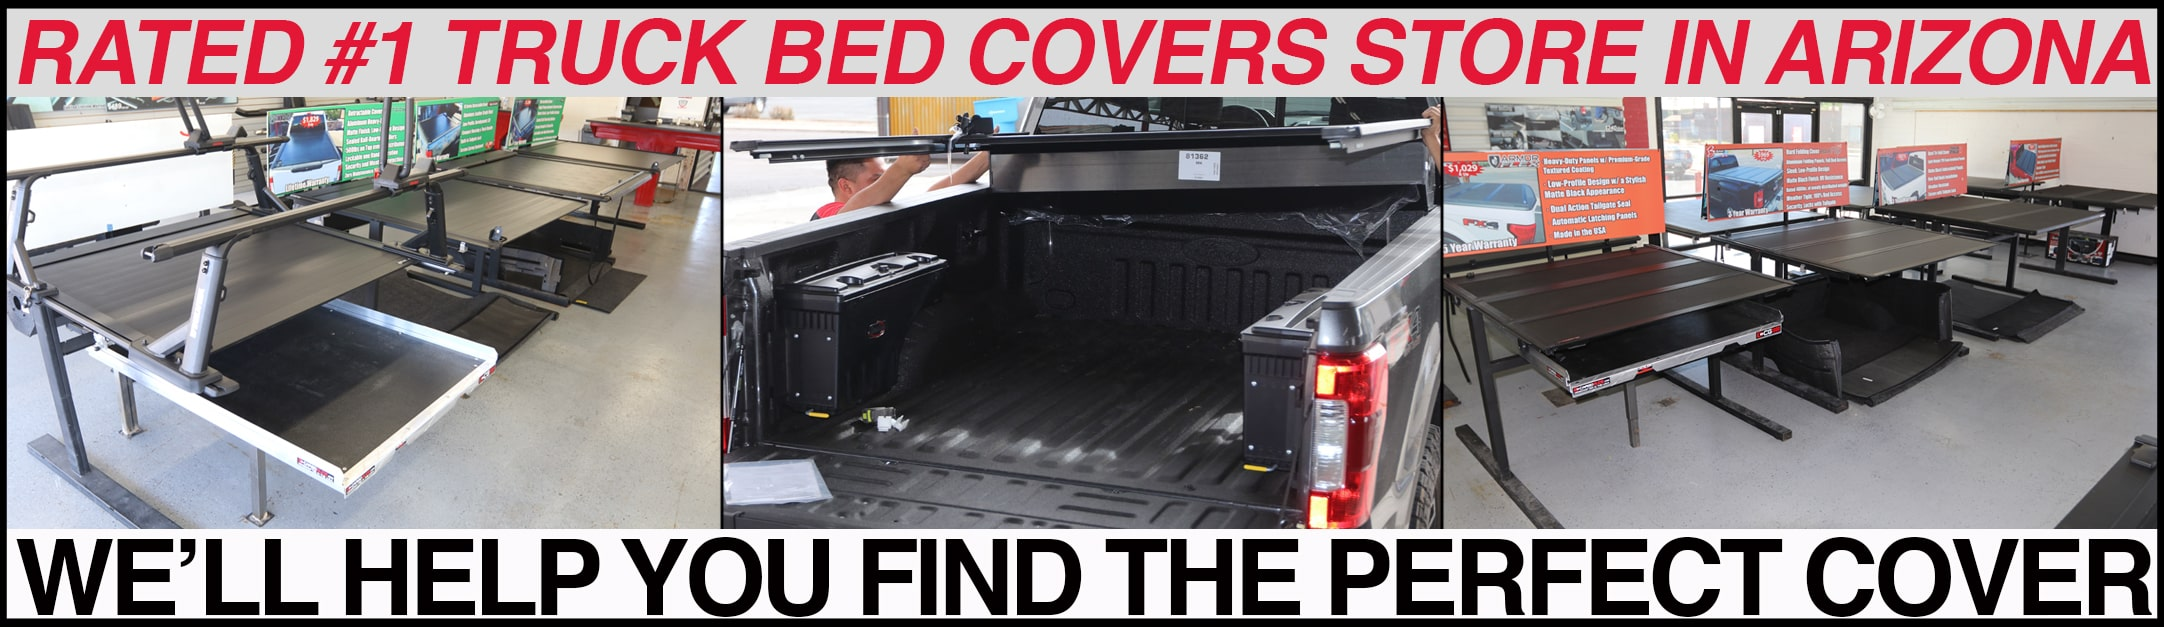 tonneau covers for pickup truck beds